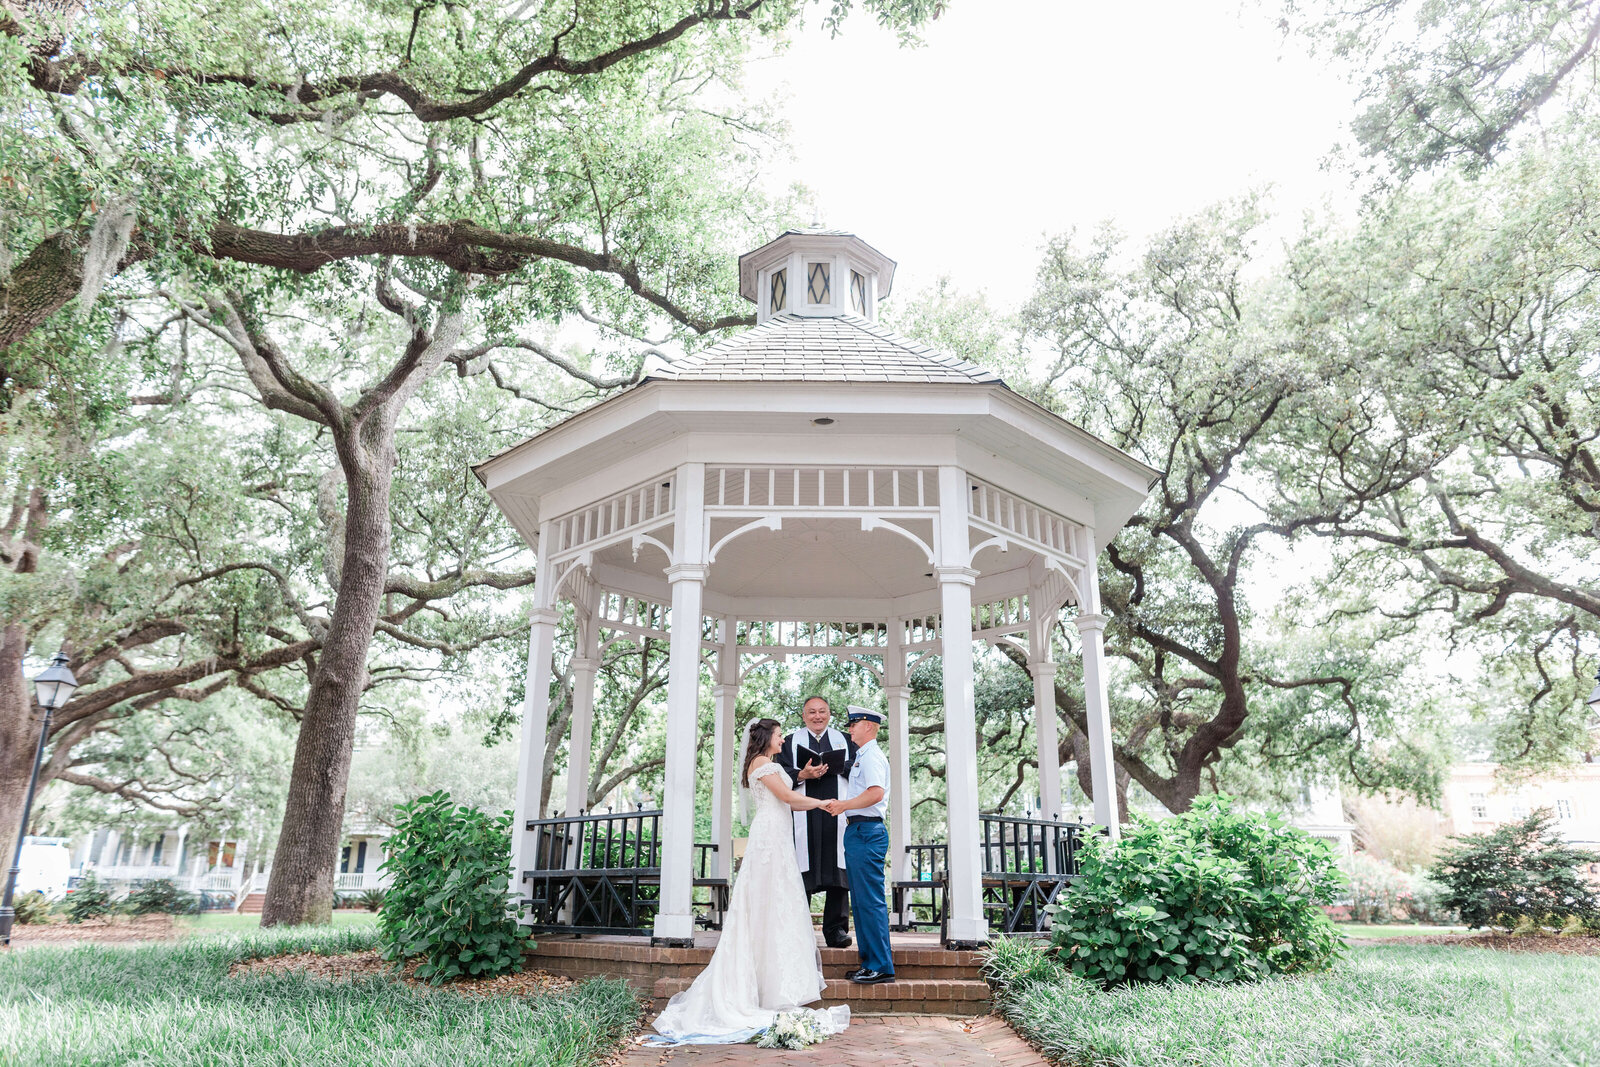 Elopement in Whitefield Square Savannah by Savannah Elopement Package